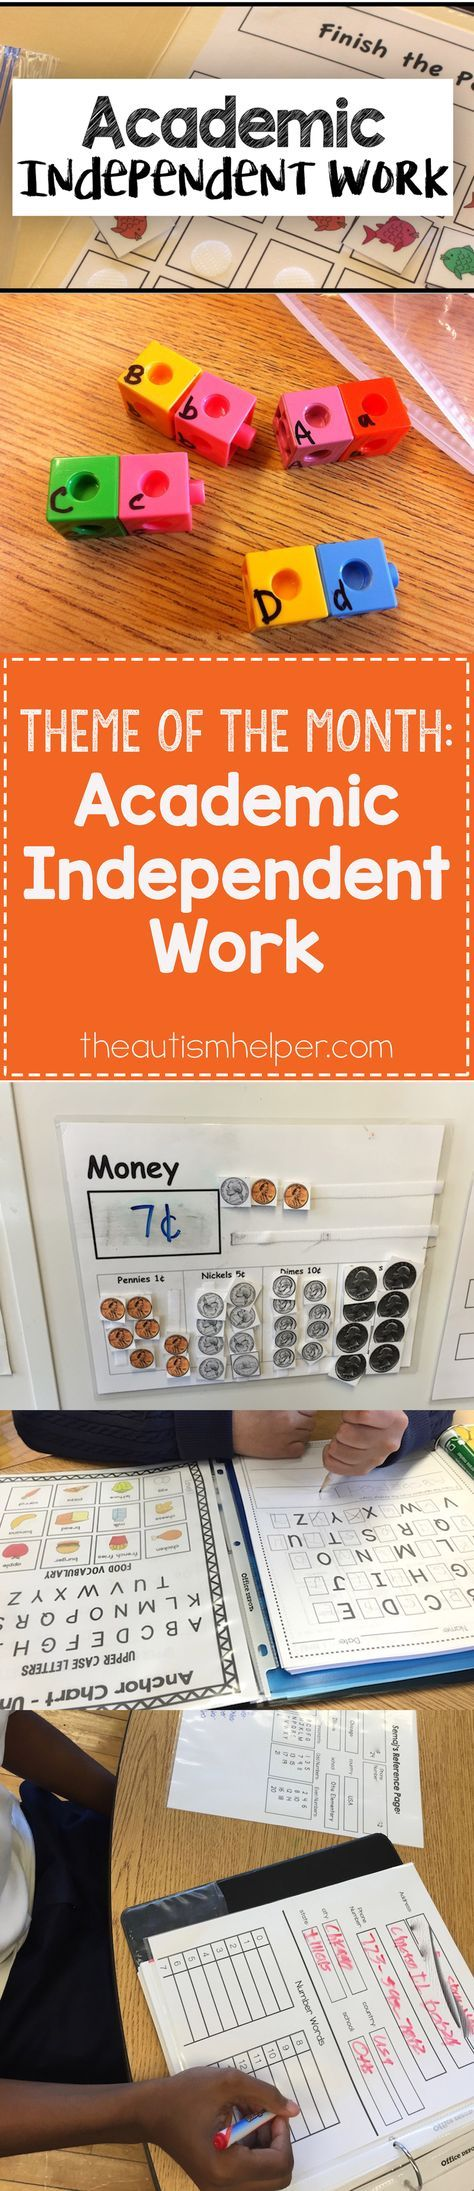 Last month's data-collecting goals still ring true, but this month we're focusing on academic independent work. Find out why we love these skills on the blog!! From theautismhelper.com #theautismhelper